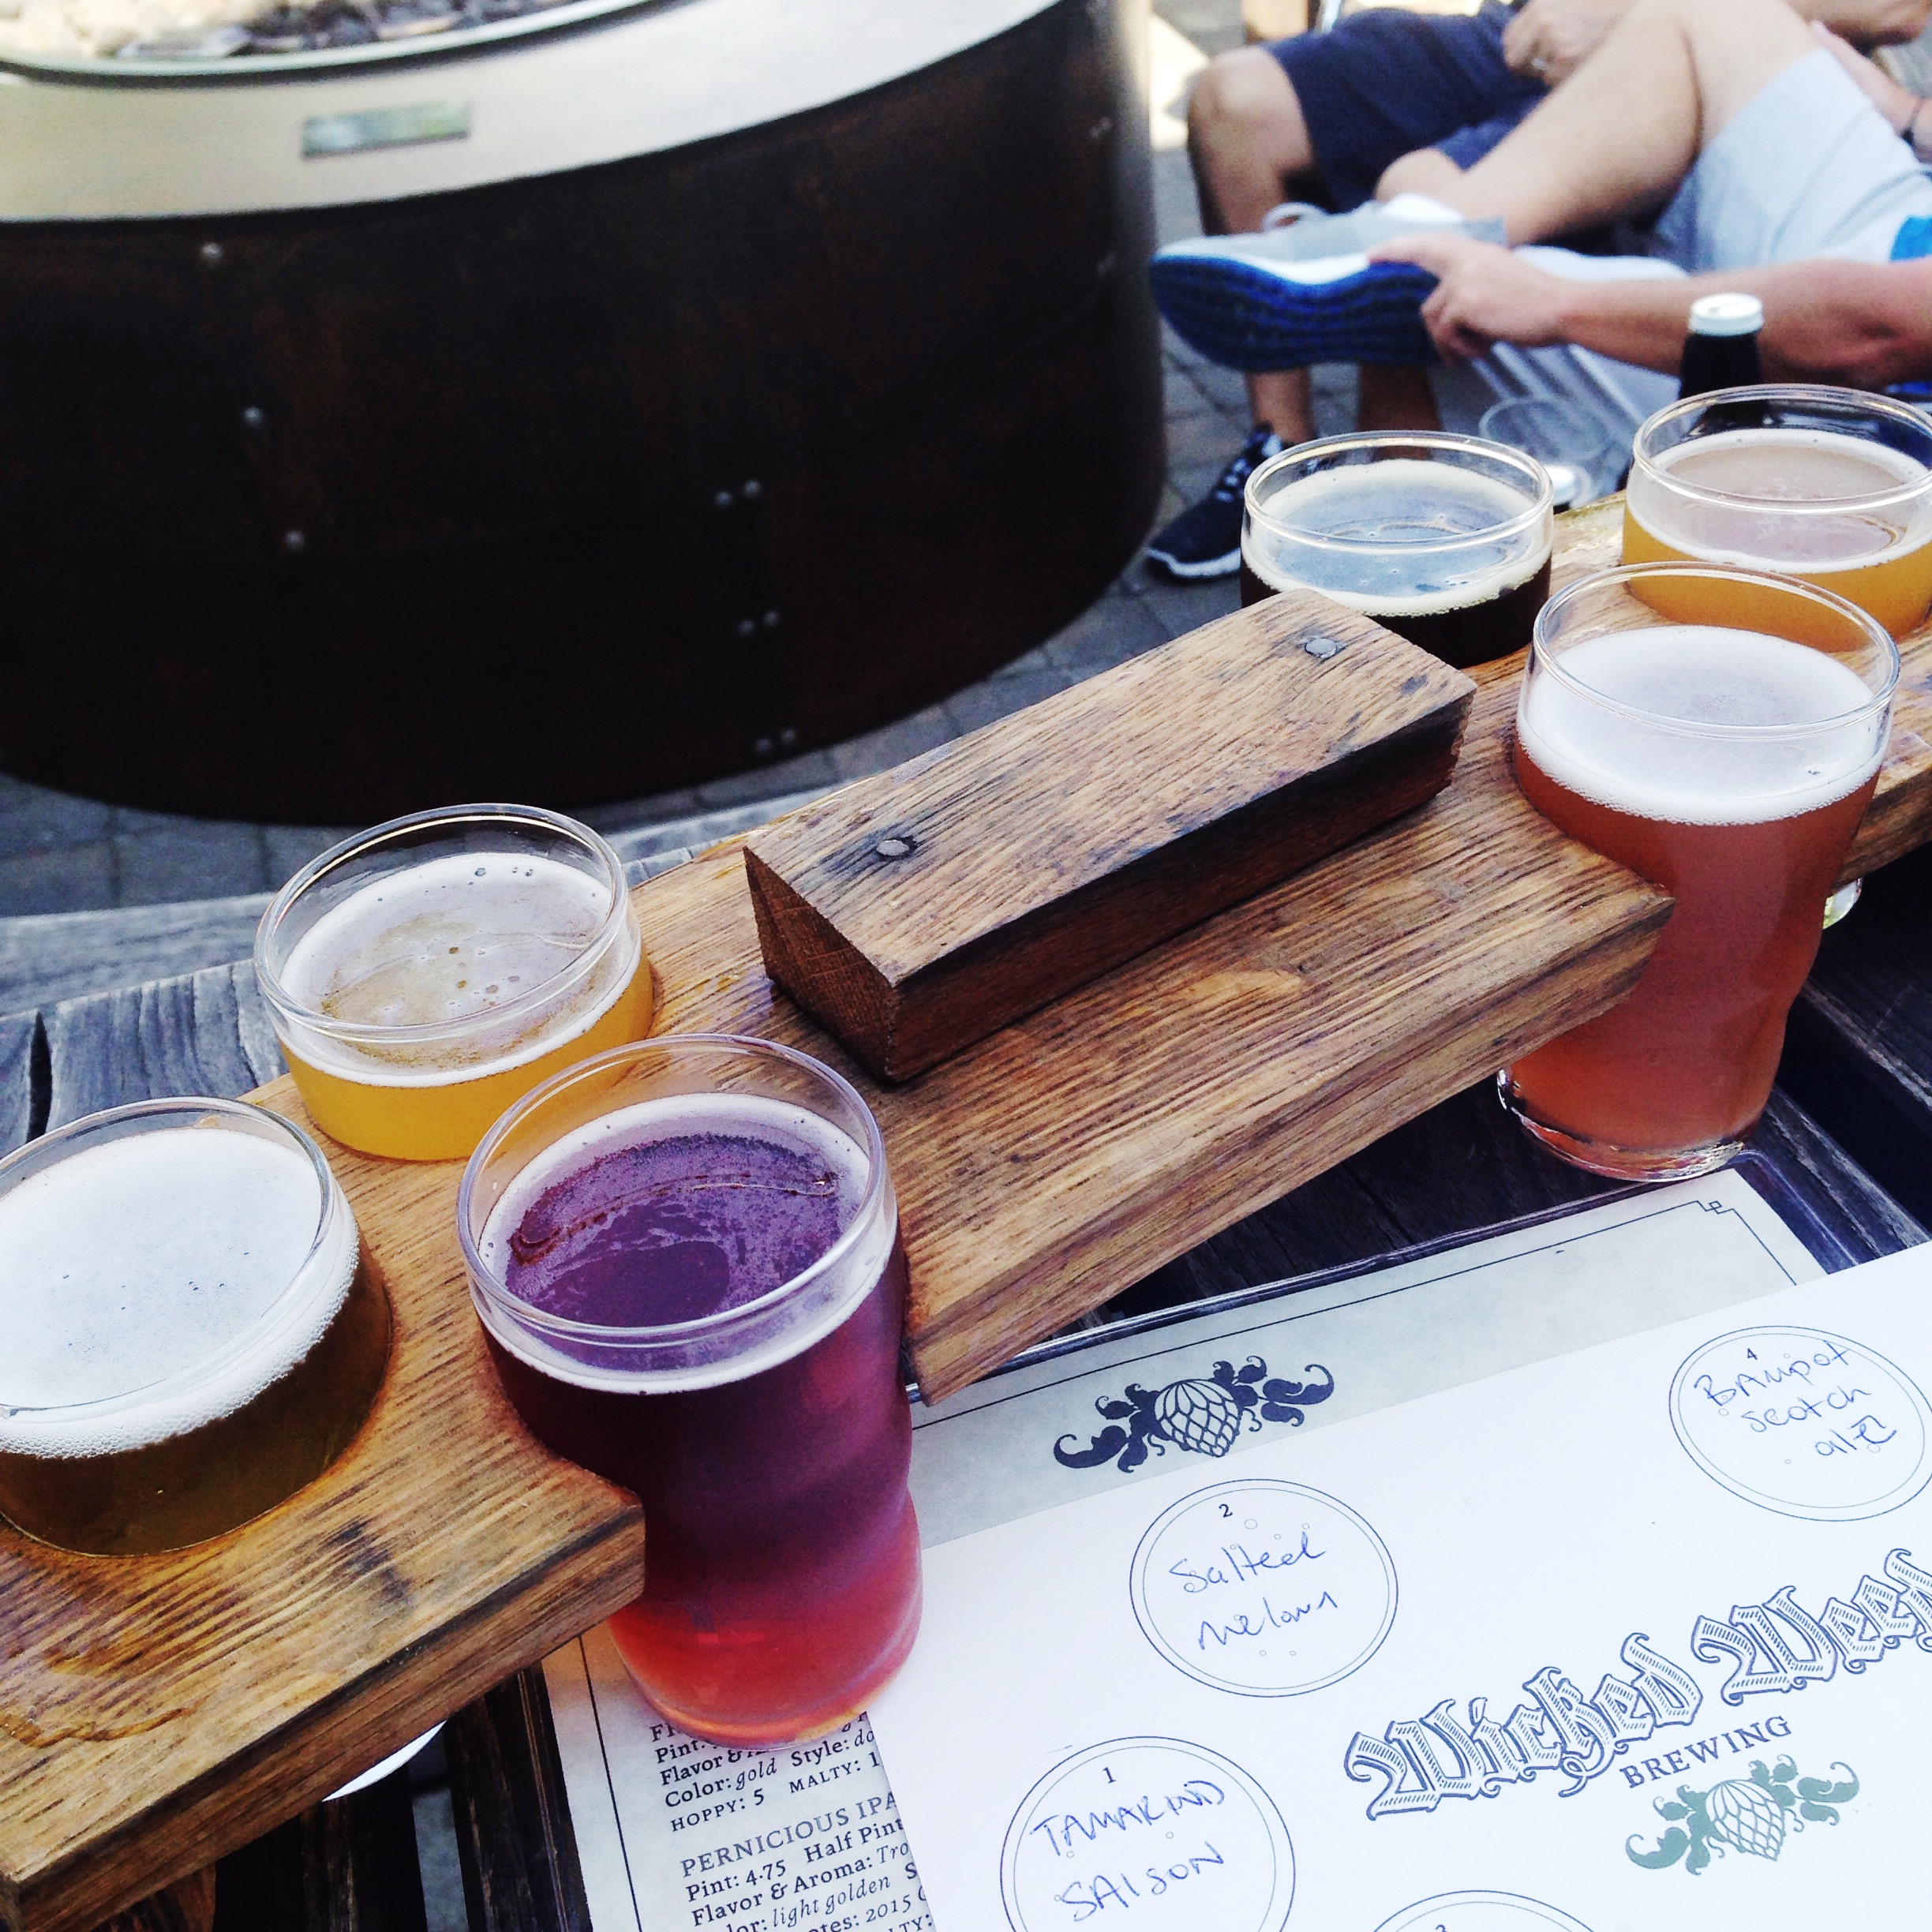 Beer flight at Wicked Weed